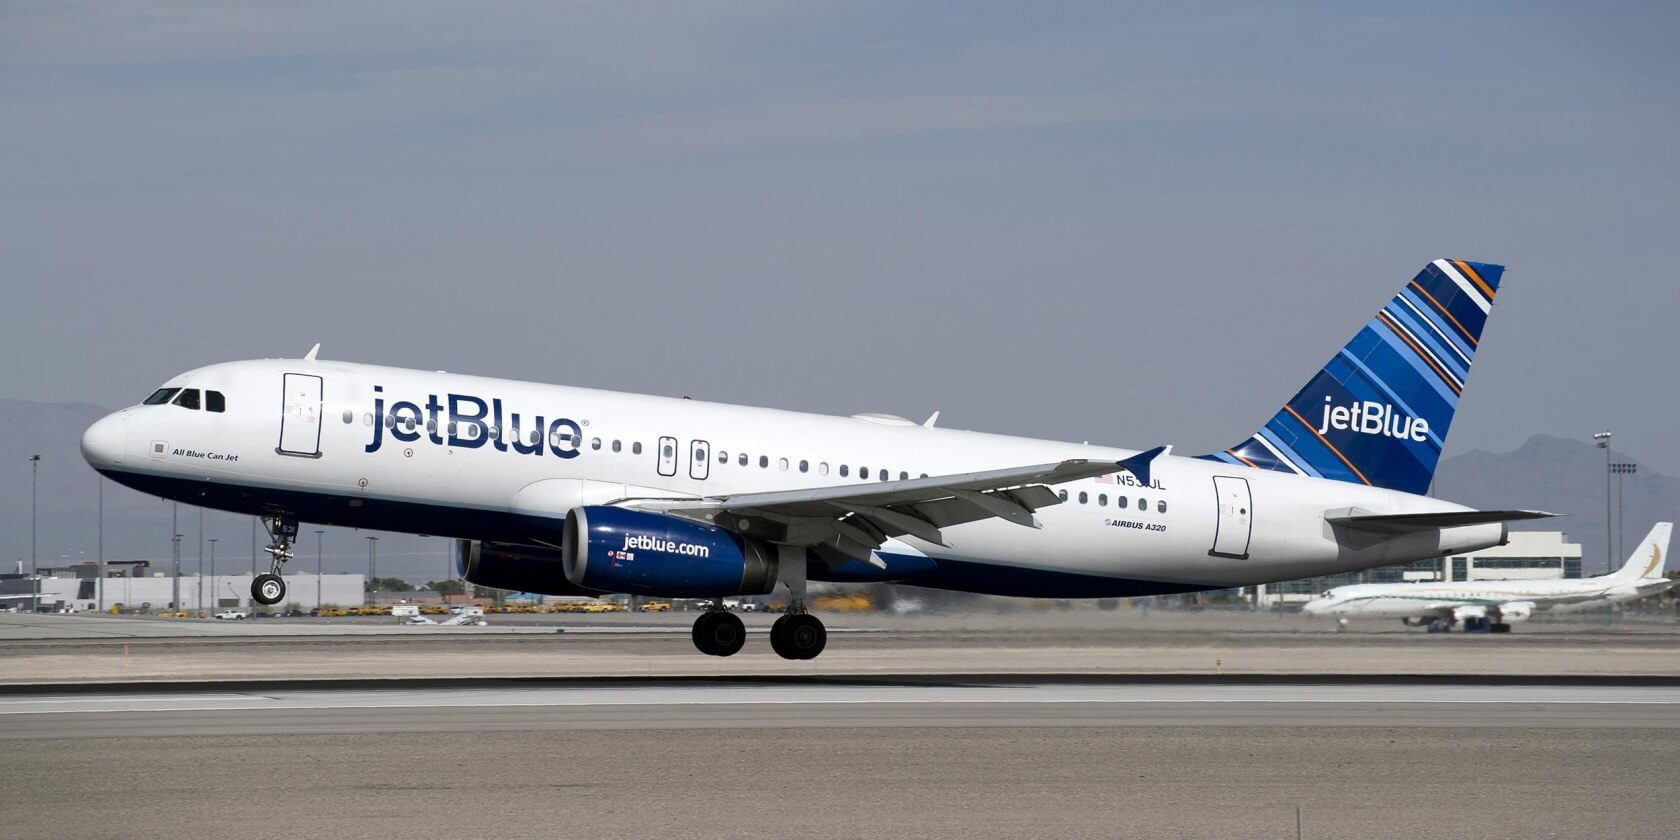 JetBlue contest calls on participants to delete Instagram photos